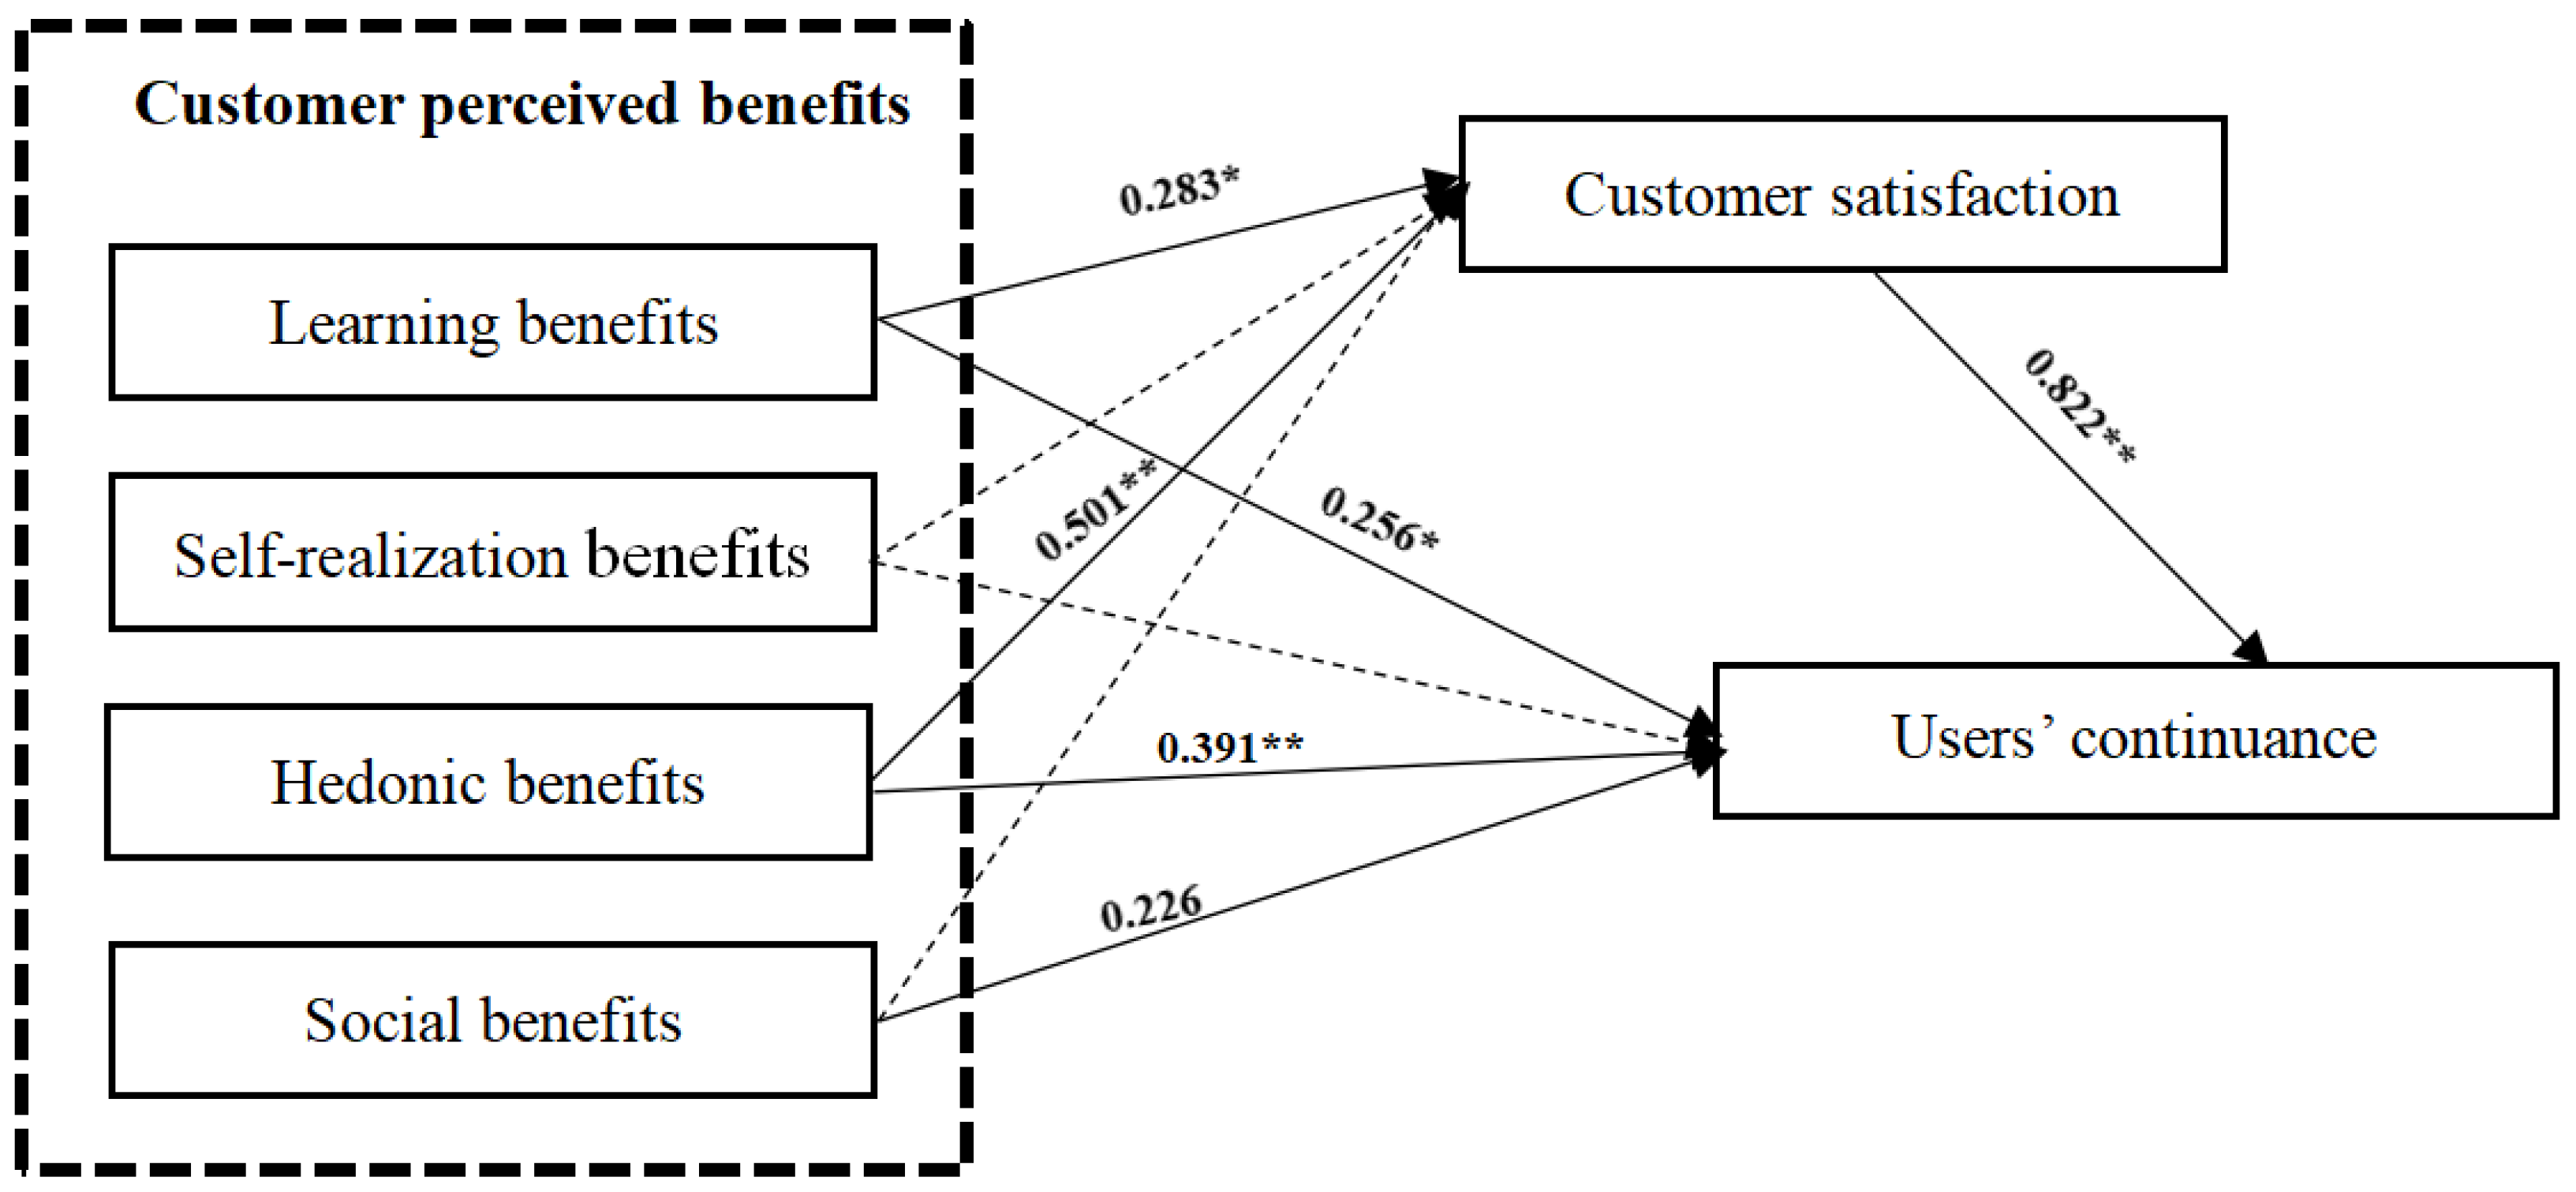 JOItmC | Free Full-Text | A Model and Empirical Study on the User's